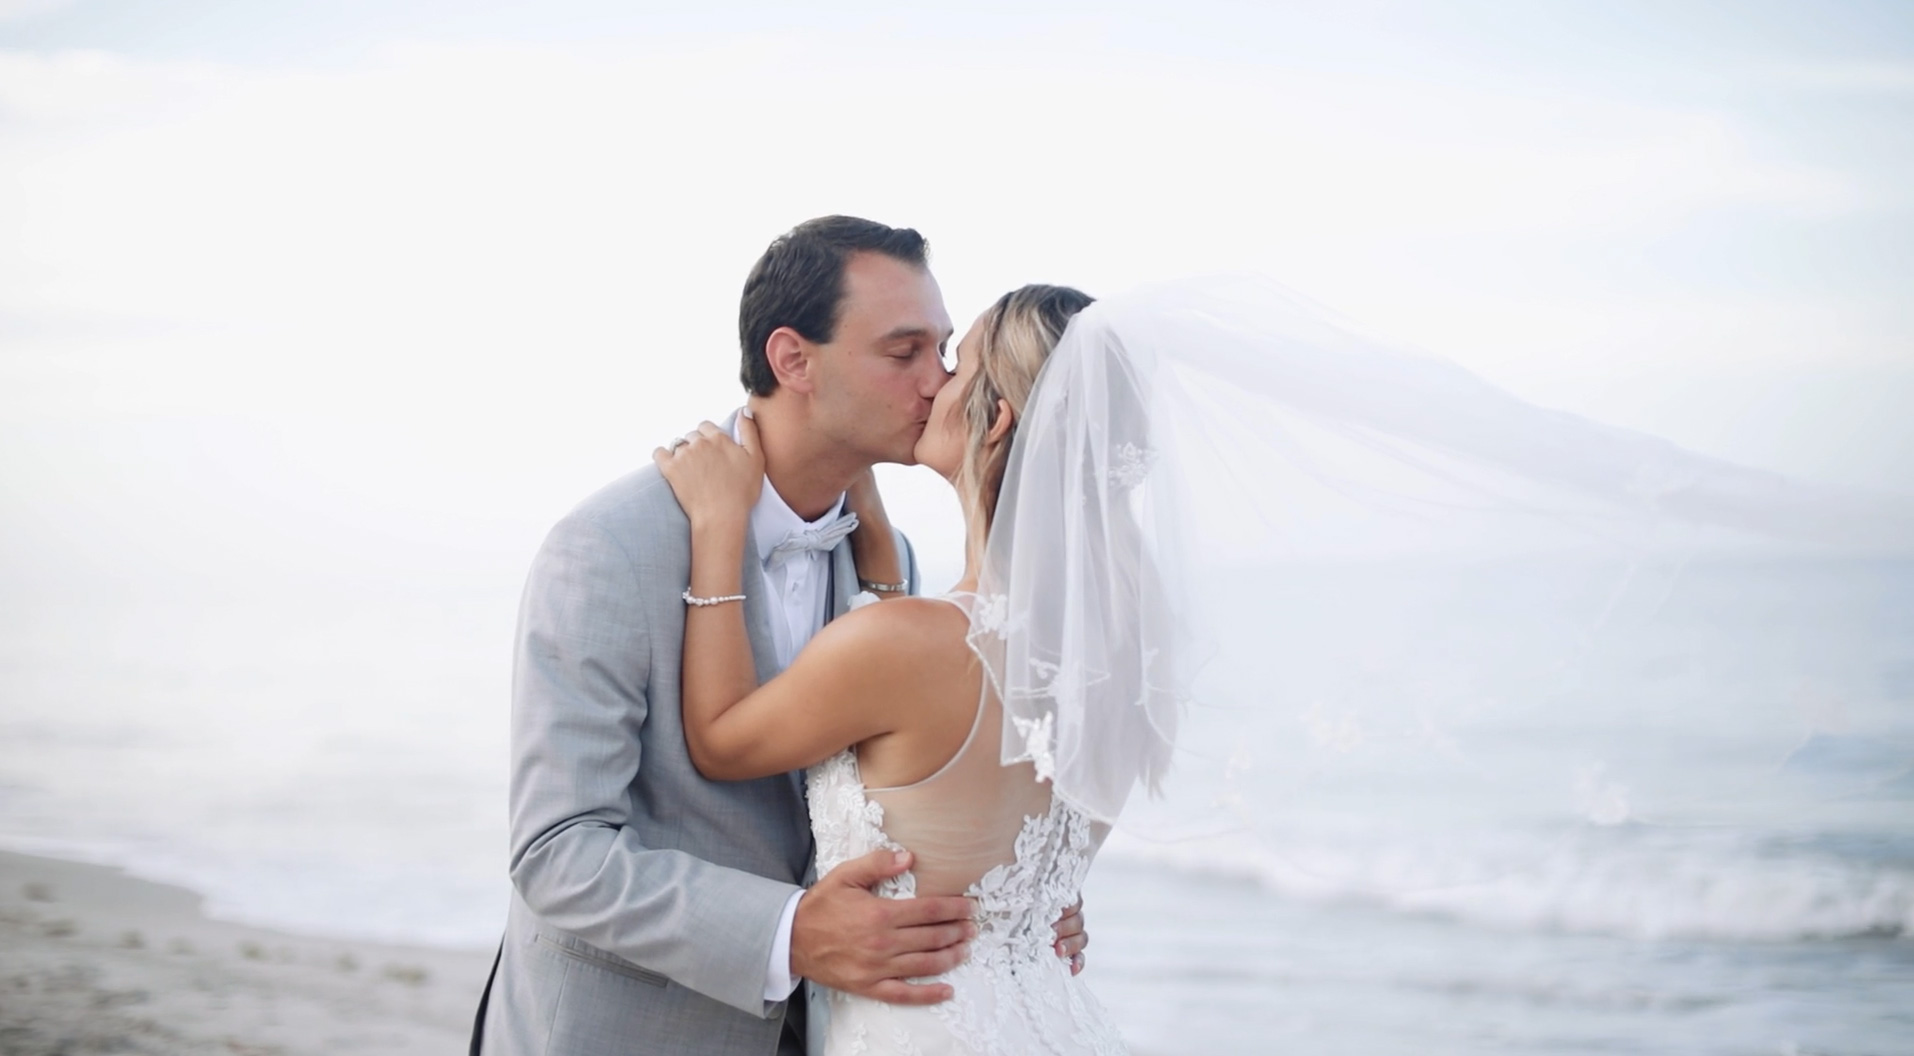 Wedding Video - Sunrise Multimedia Productions - Vero Beach, FL